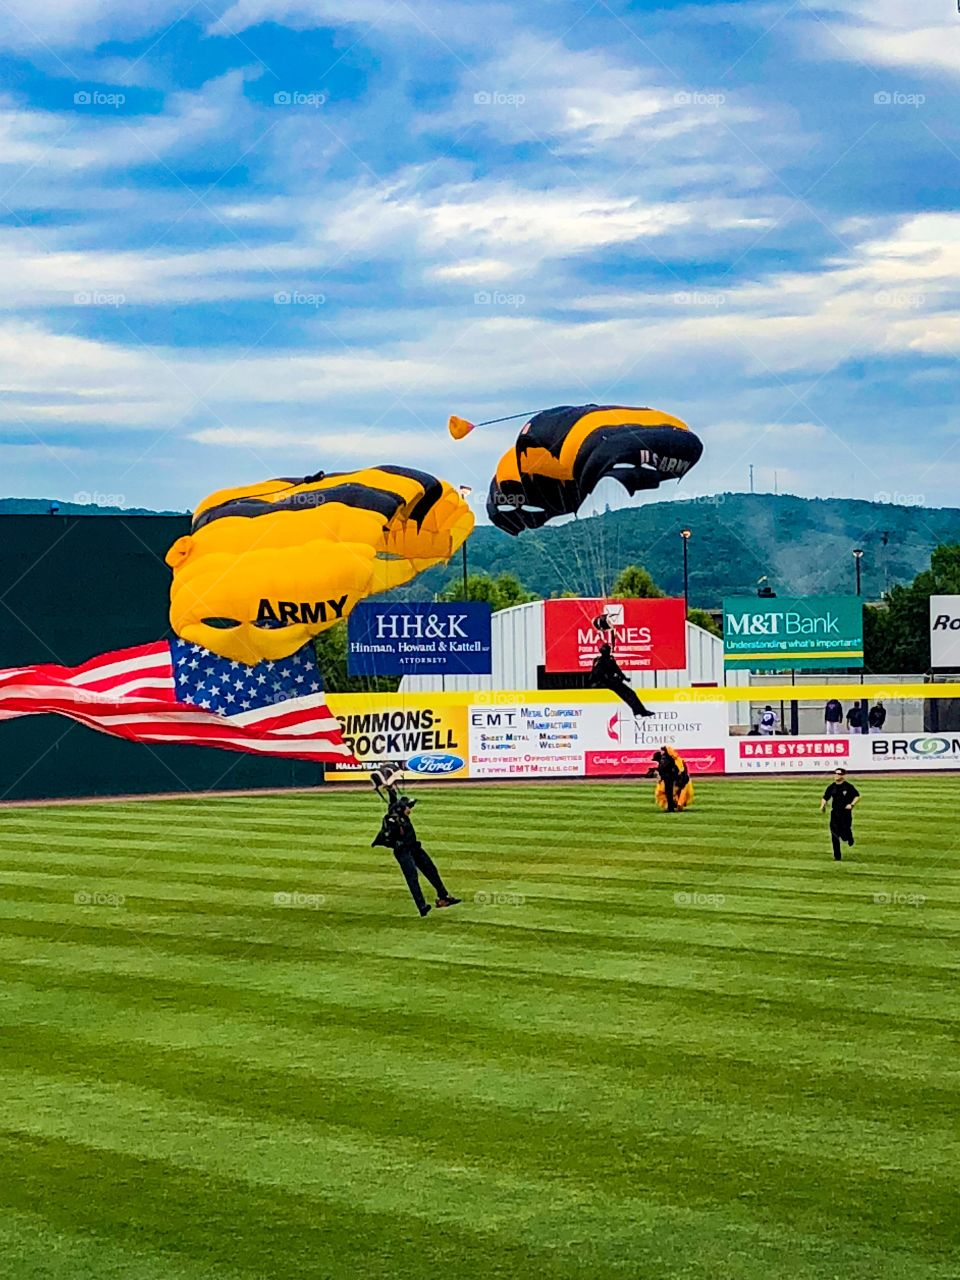 Army skydivers during national anthem at a baseball game